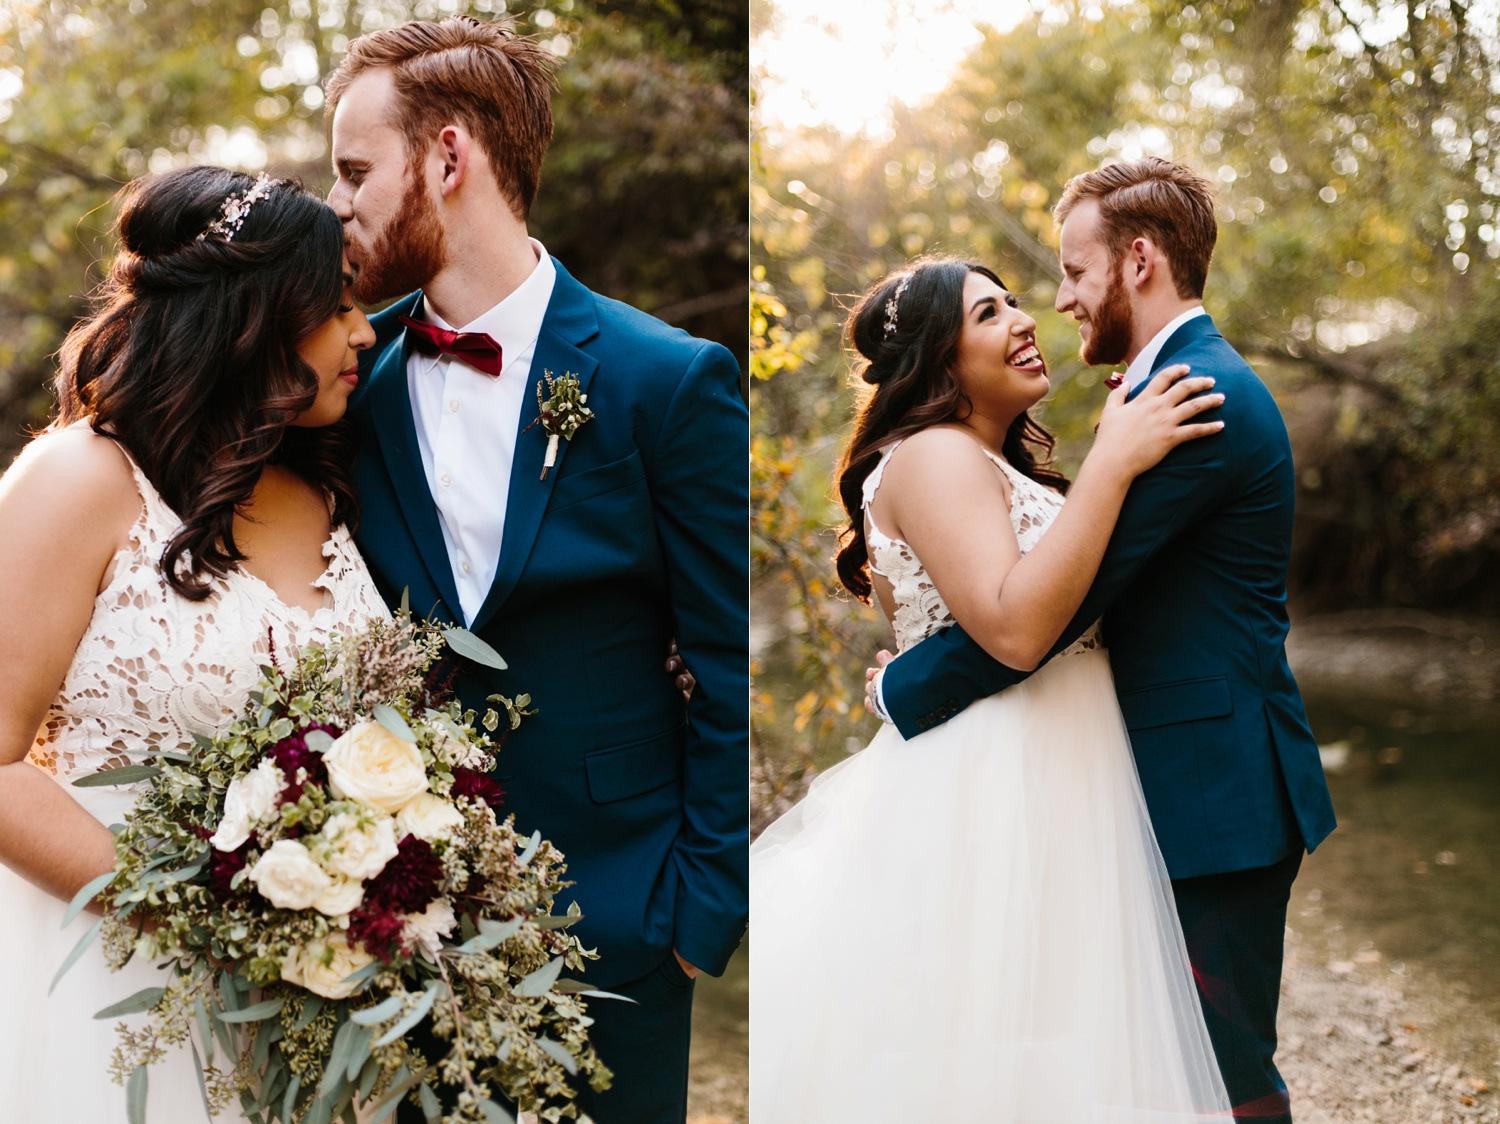 Grant + Lysette | a vibrant, deep burgundy and navy, and mixed metals wedding at Hidden Pines Chapel by North Texas Wedding Photographer Rachel Meagan Photography 209